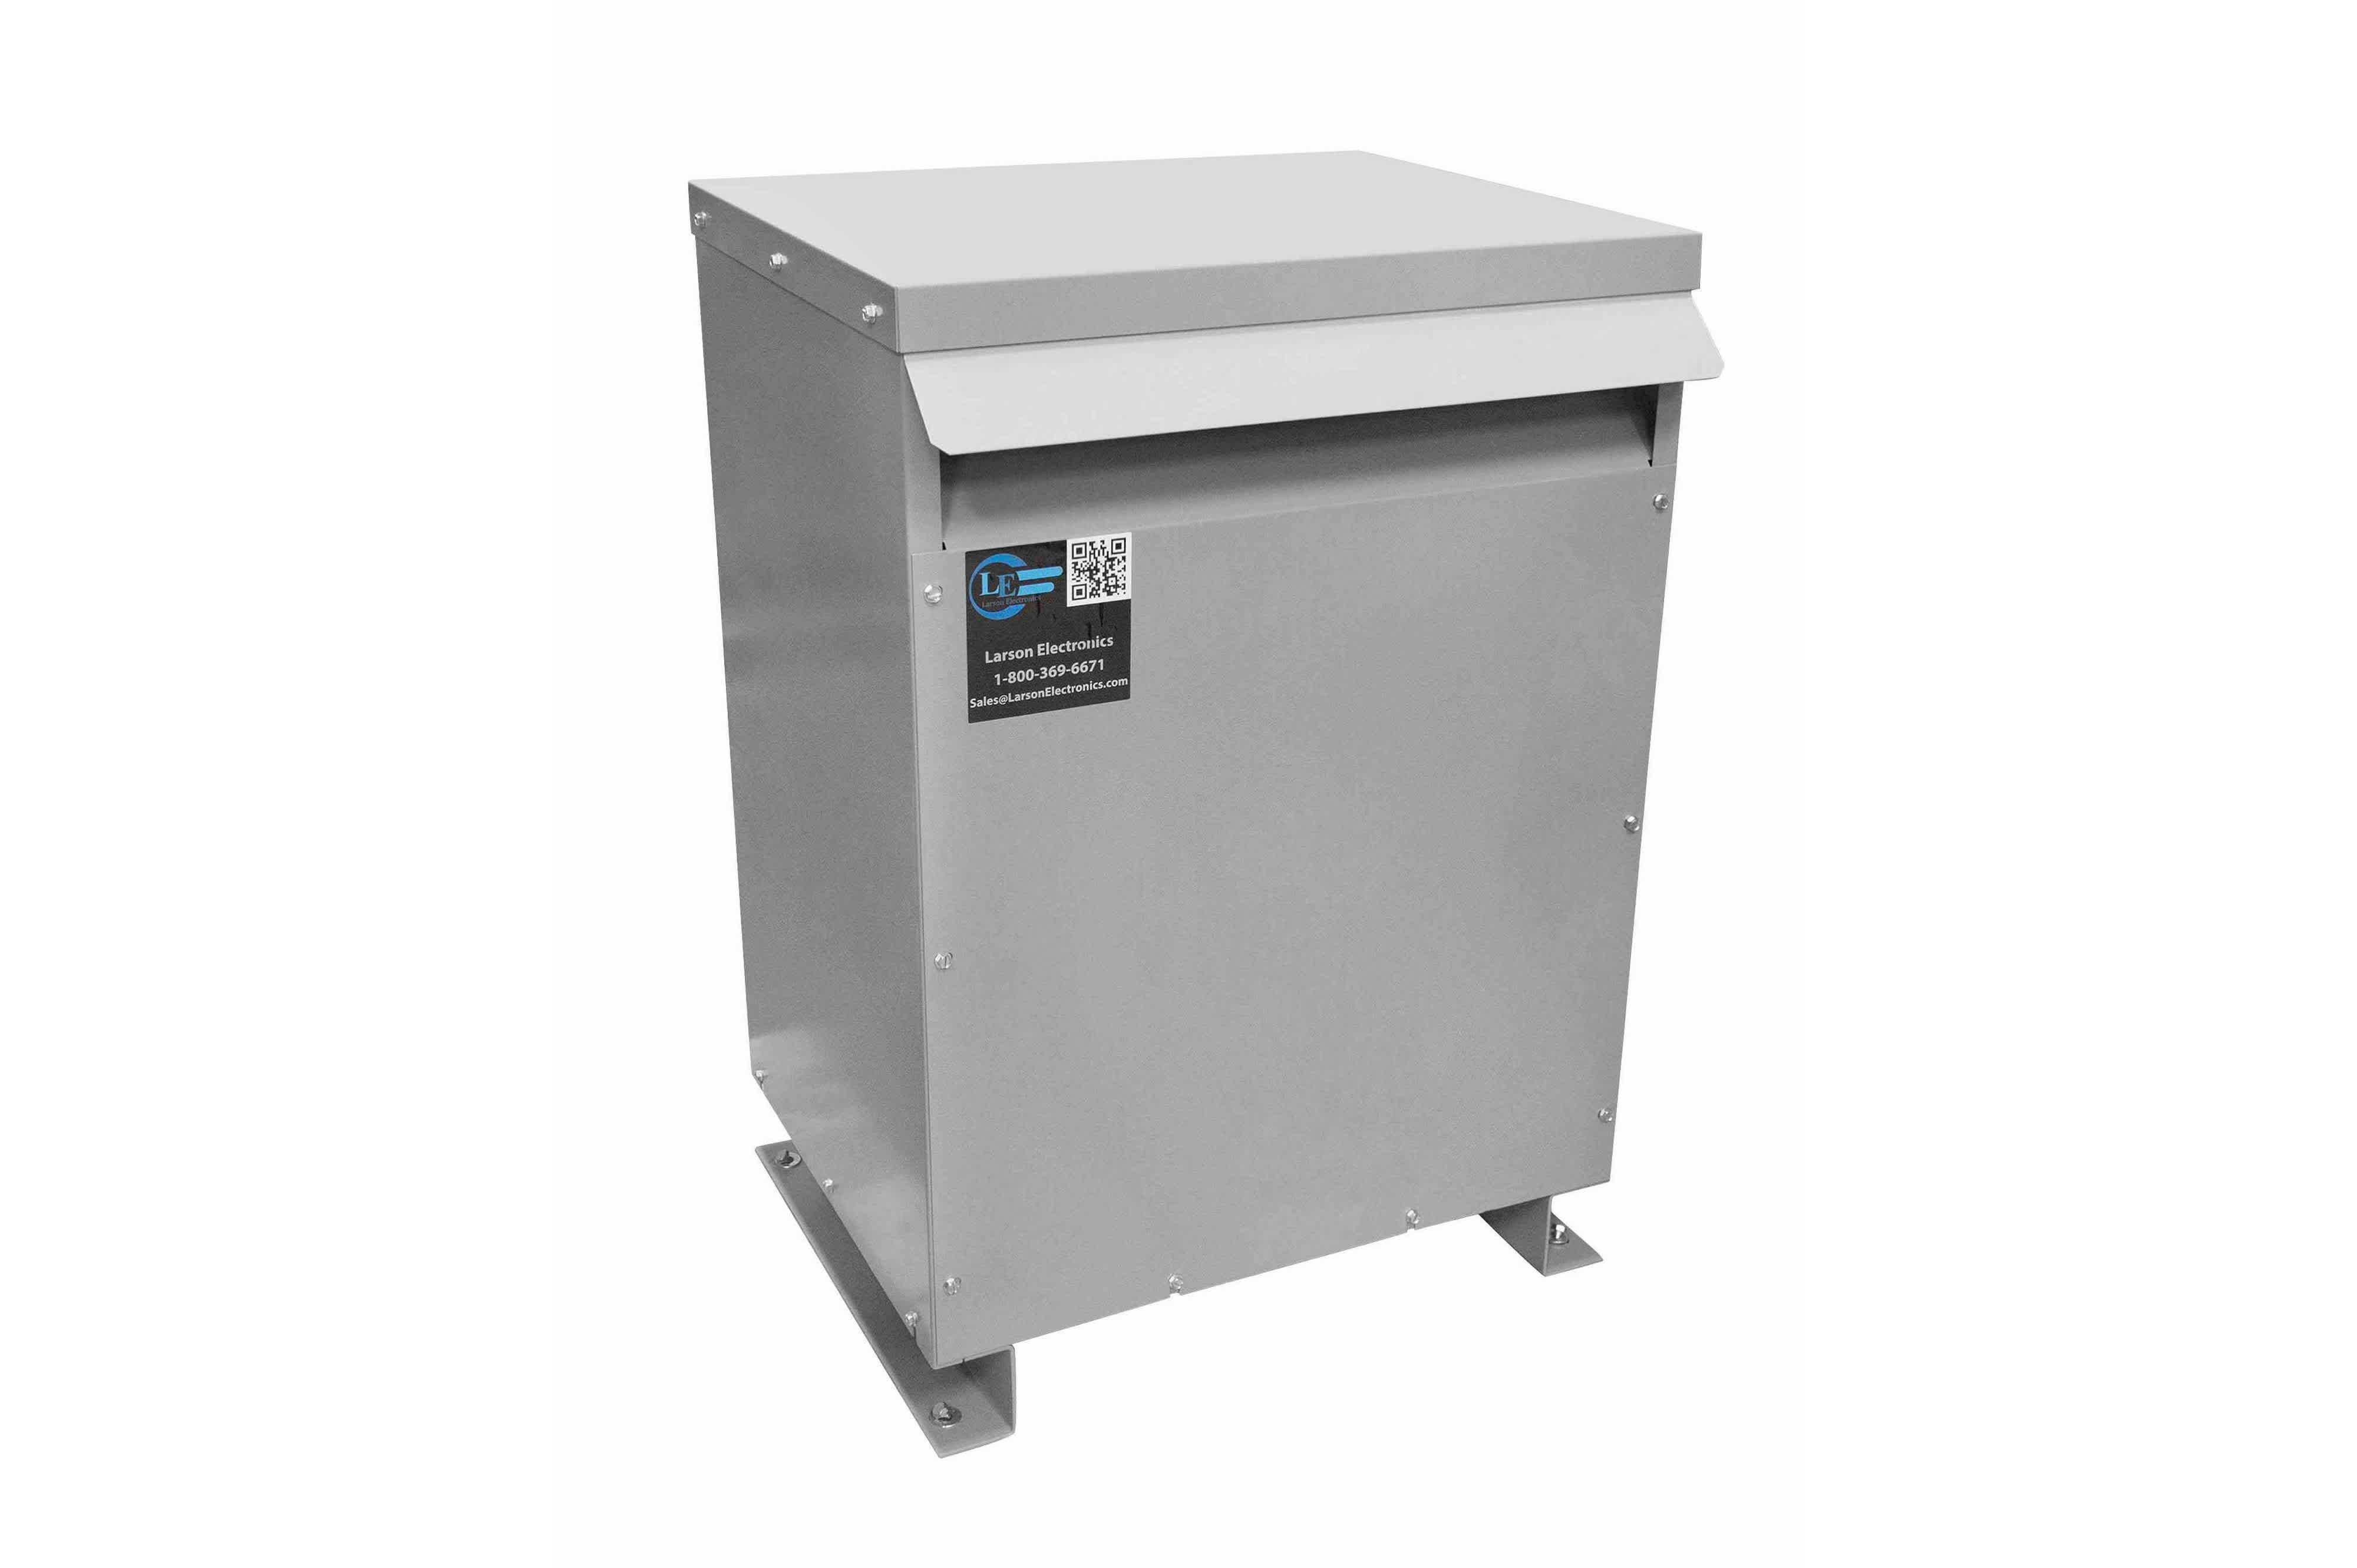 12 kVA 3PH Isolation Transformer, 460V Wye Primary, 415V Delta Secondary, N3R, Ventilated, 60 Hz